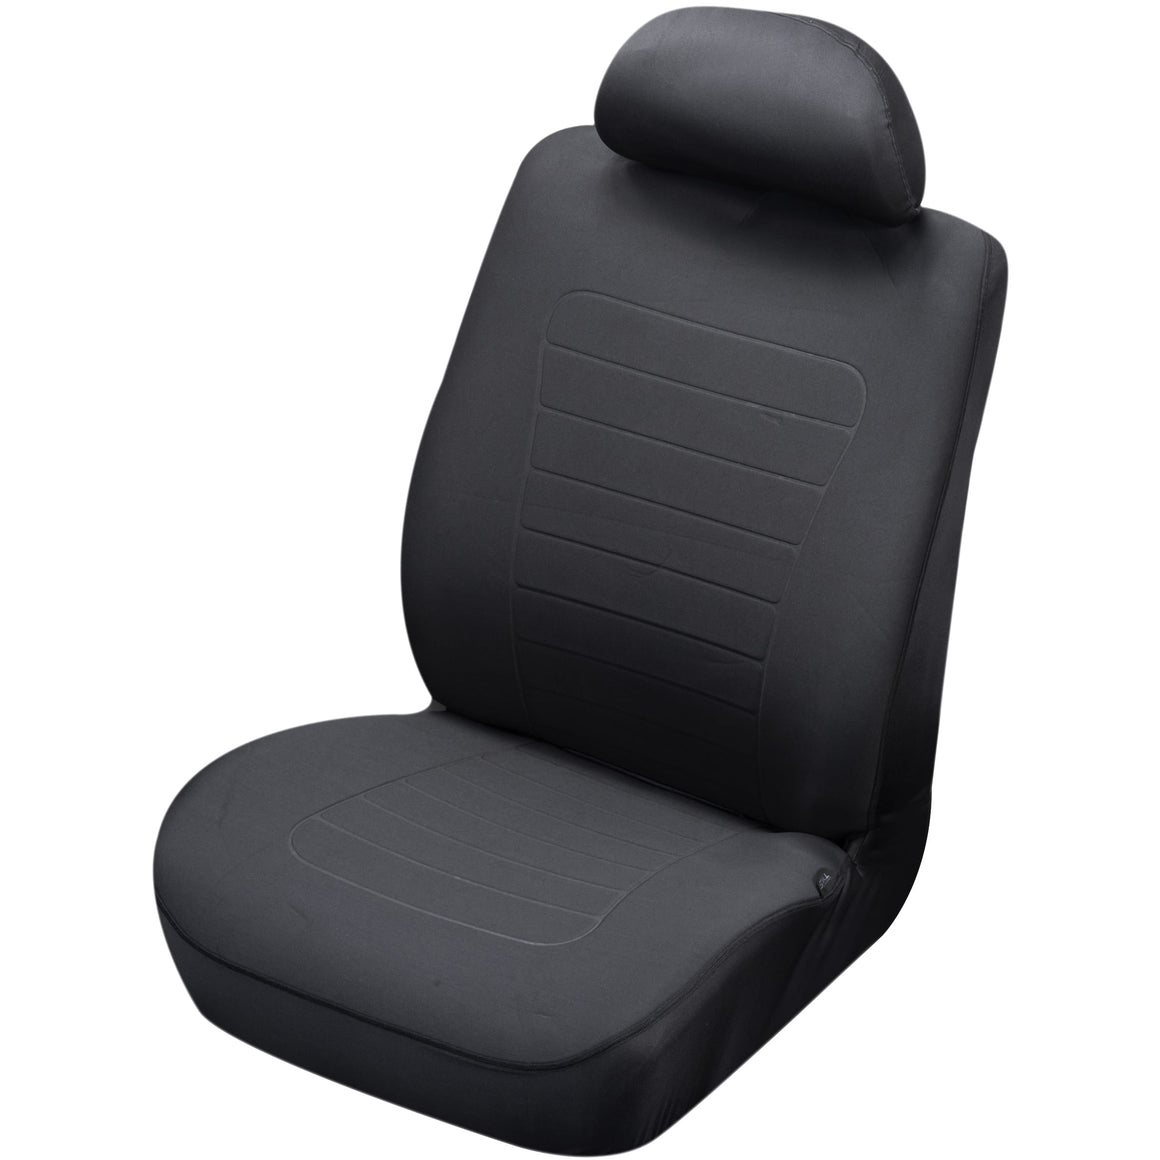 Reversible Seat Covers, White Dots/ Plain Black